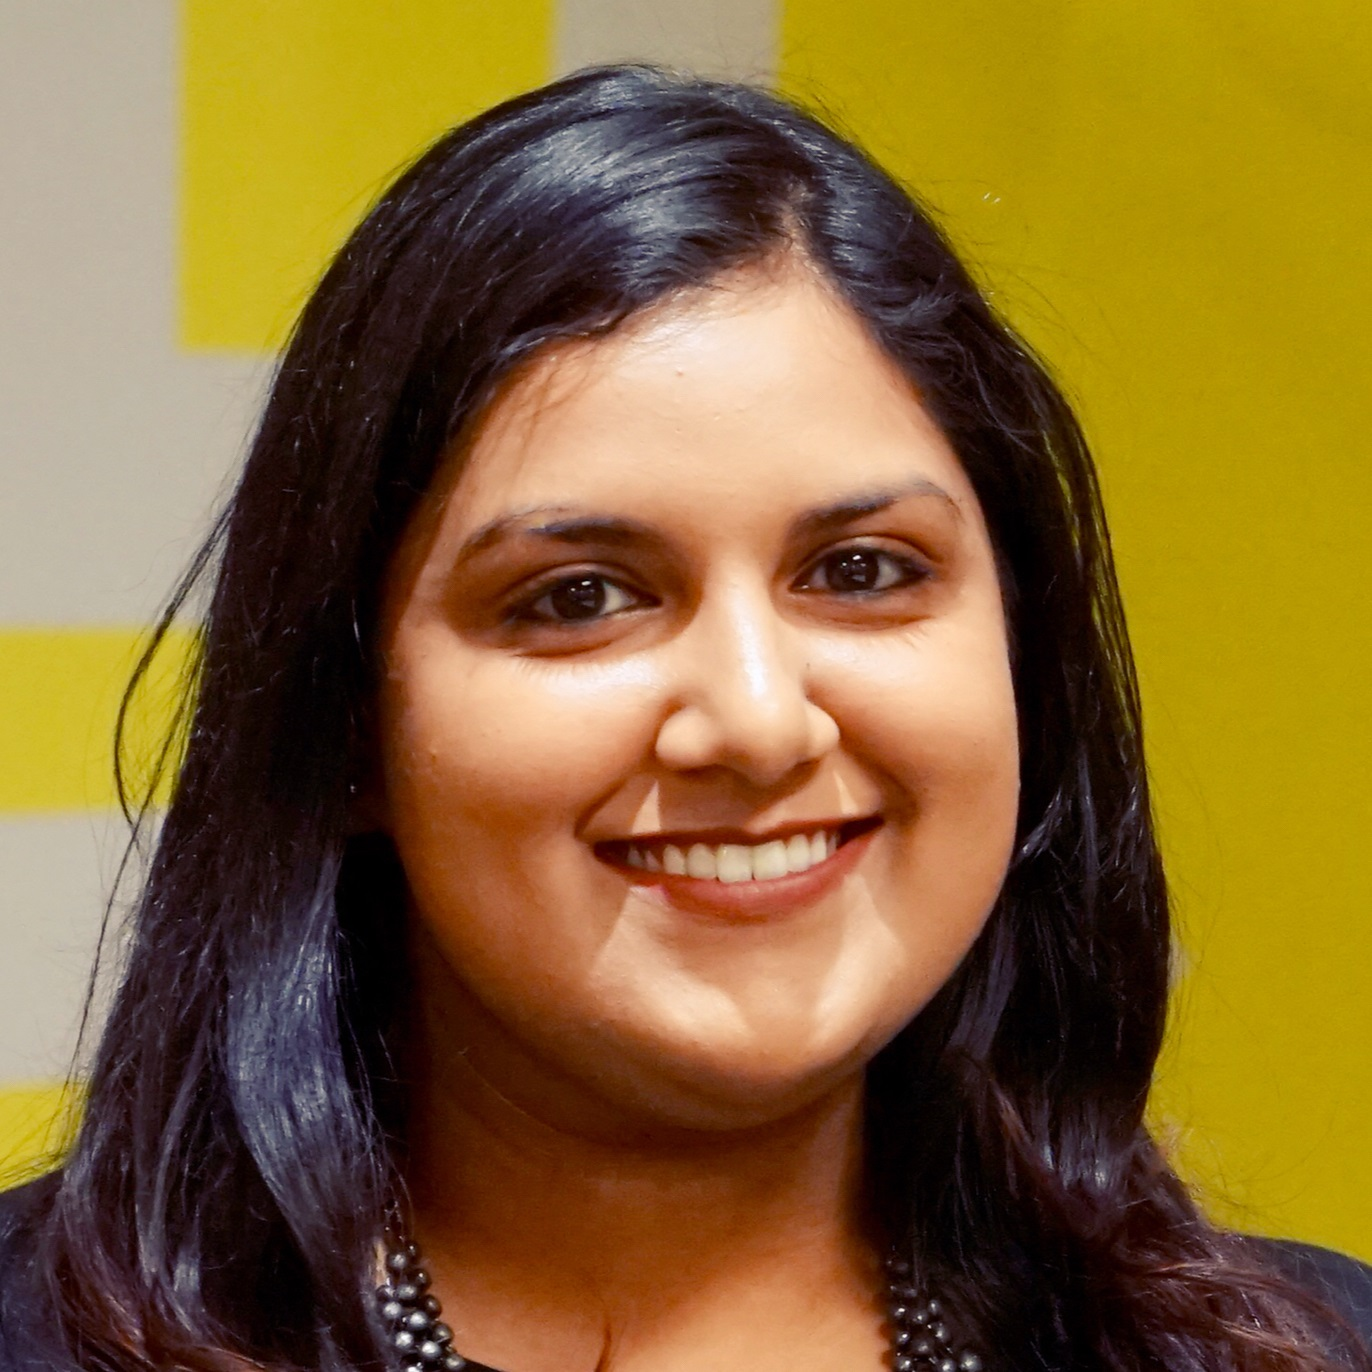 Photograph of Dr Varala Maraj smiling at the camera stood in front of a yellow and white background.